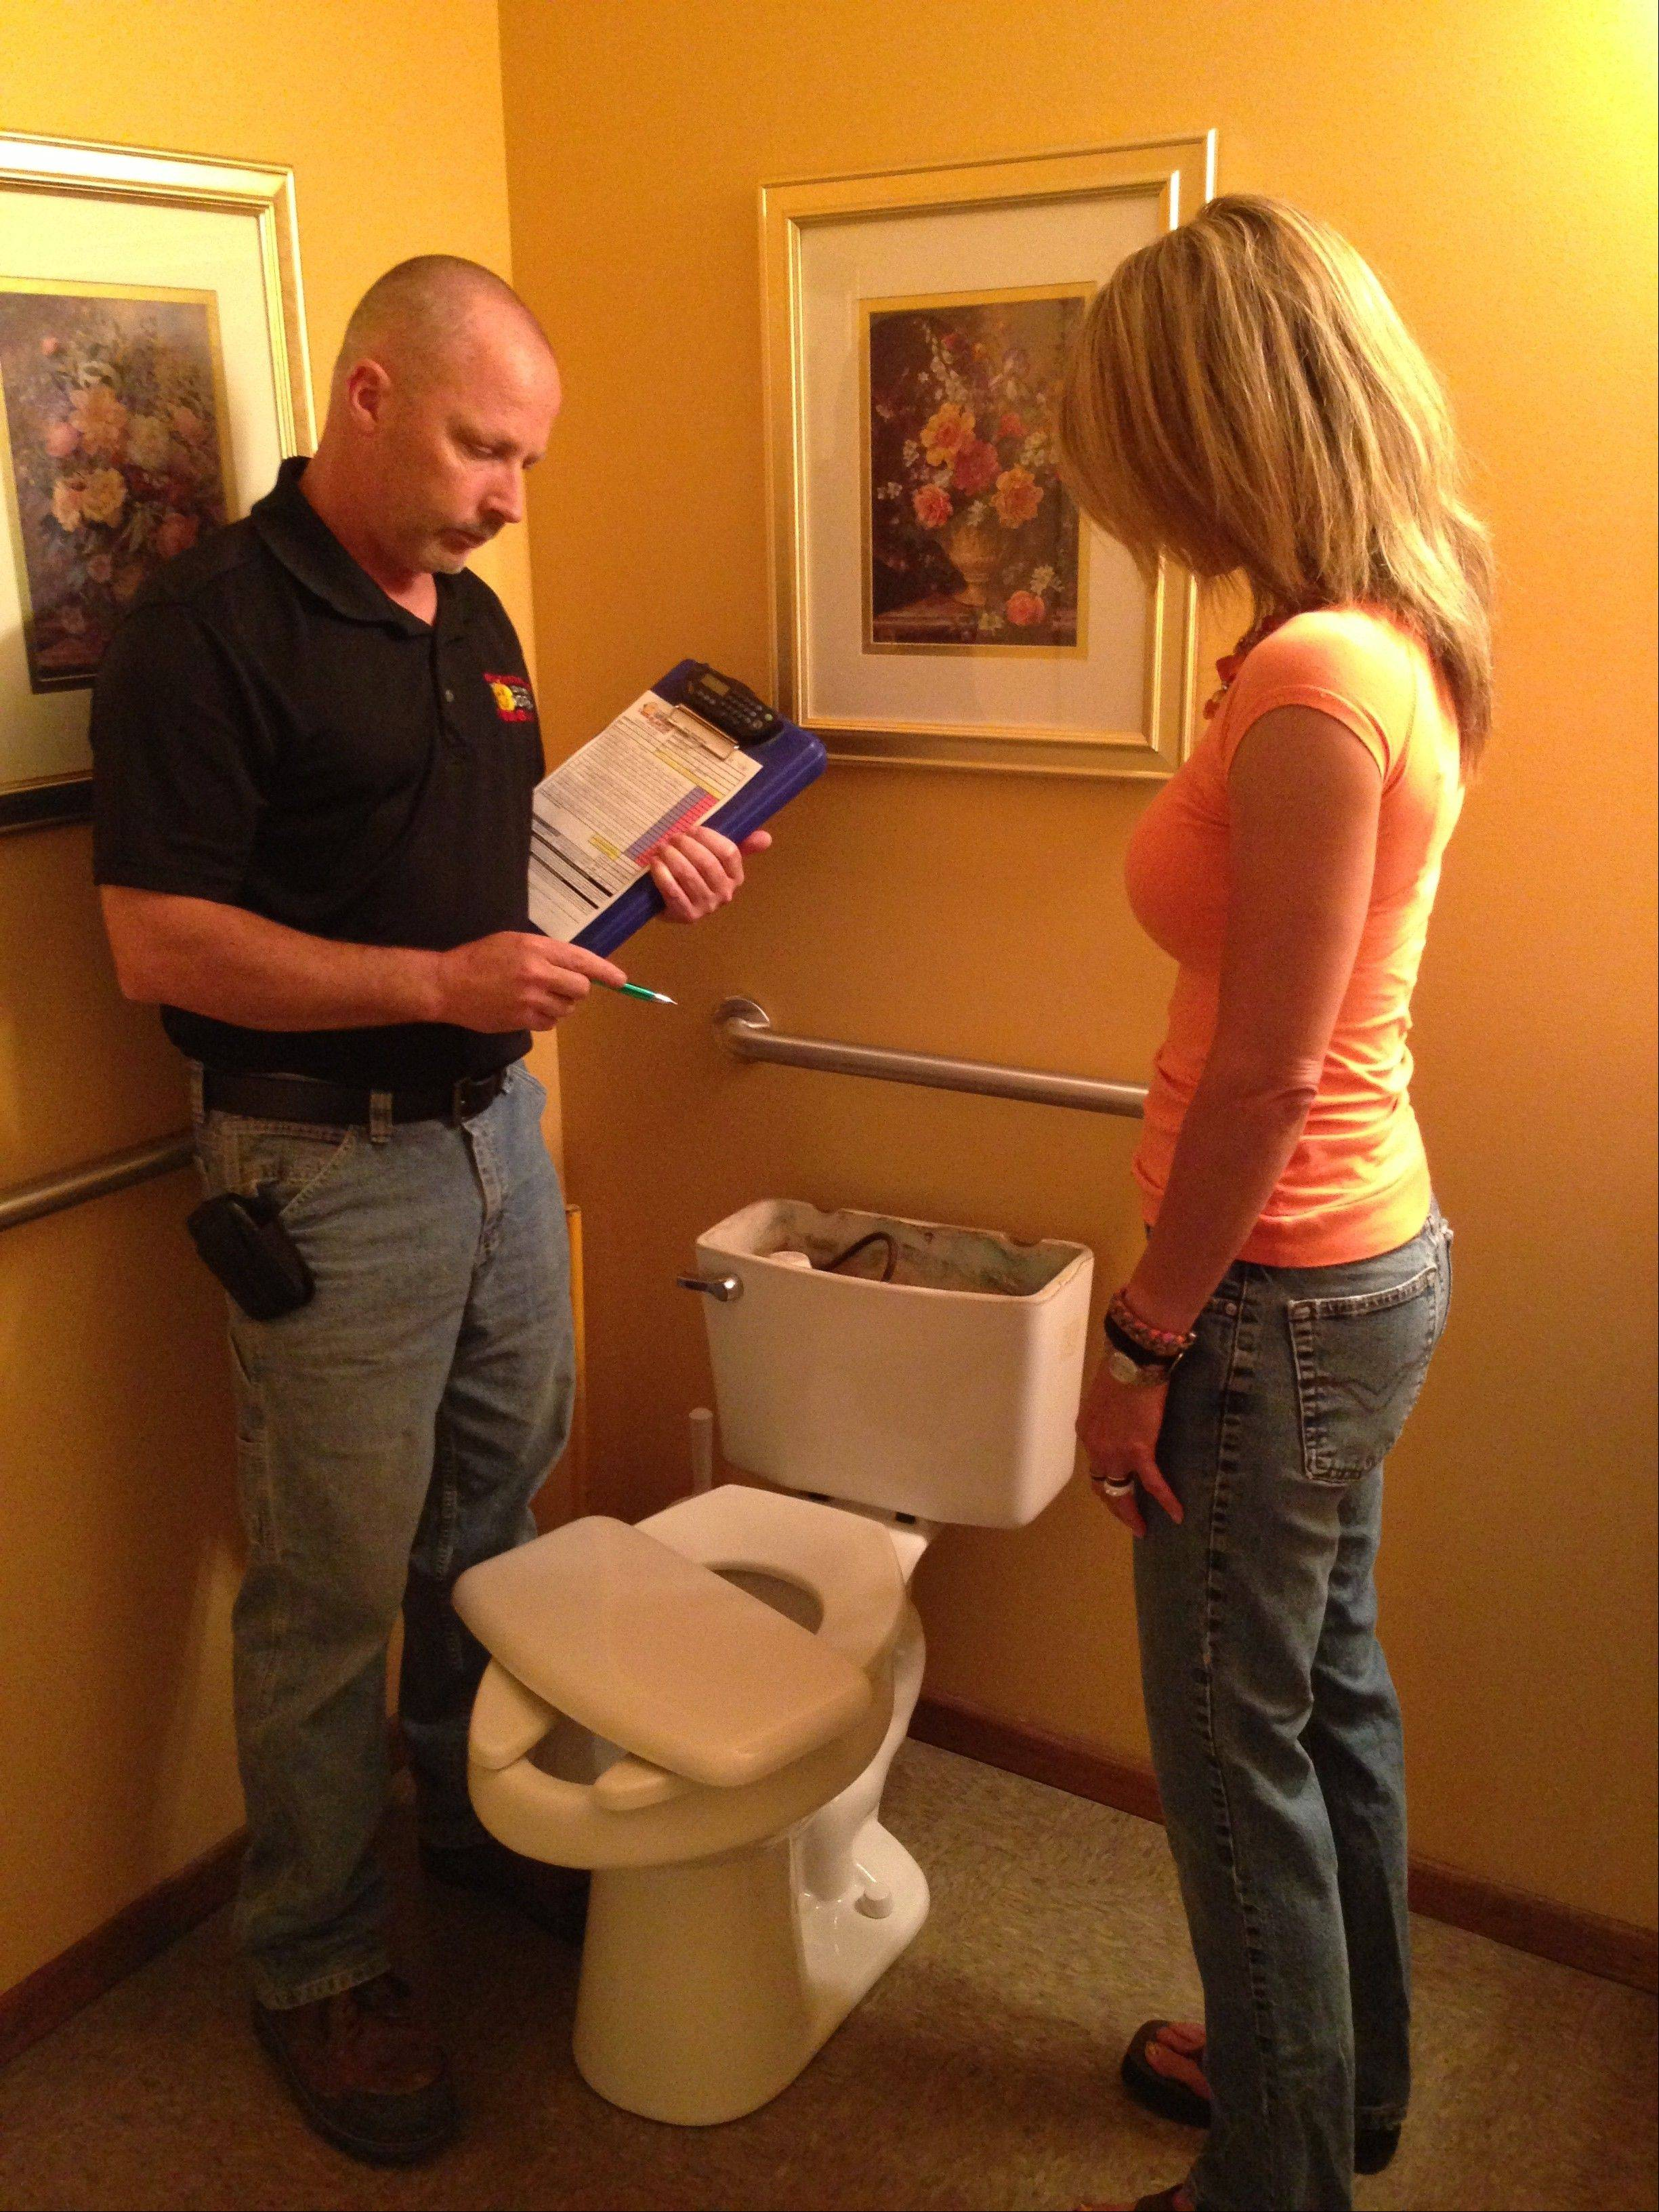 Maintenance rodding of the main sewer line leaving a home can prevent damage from backed-up toilets and floor drains.